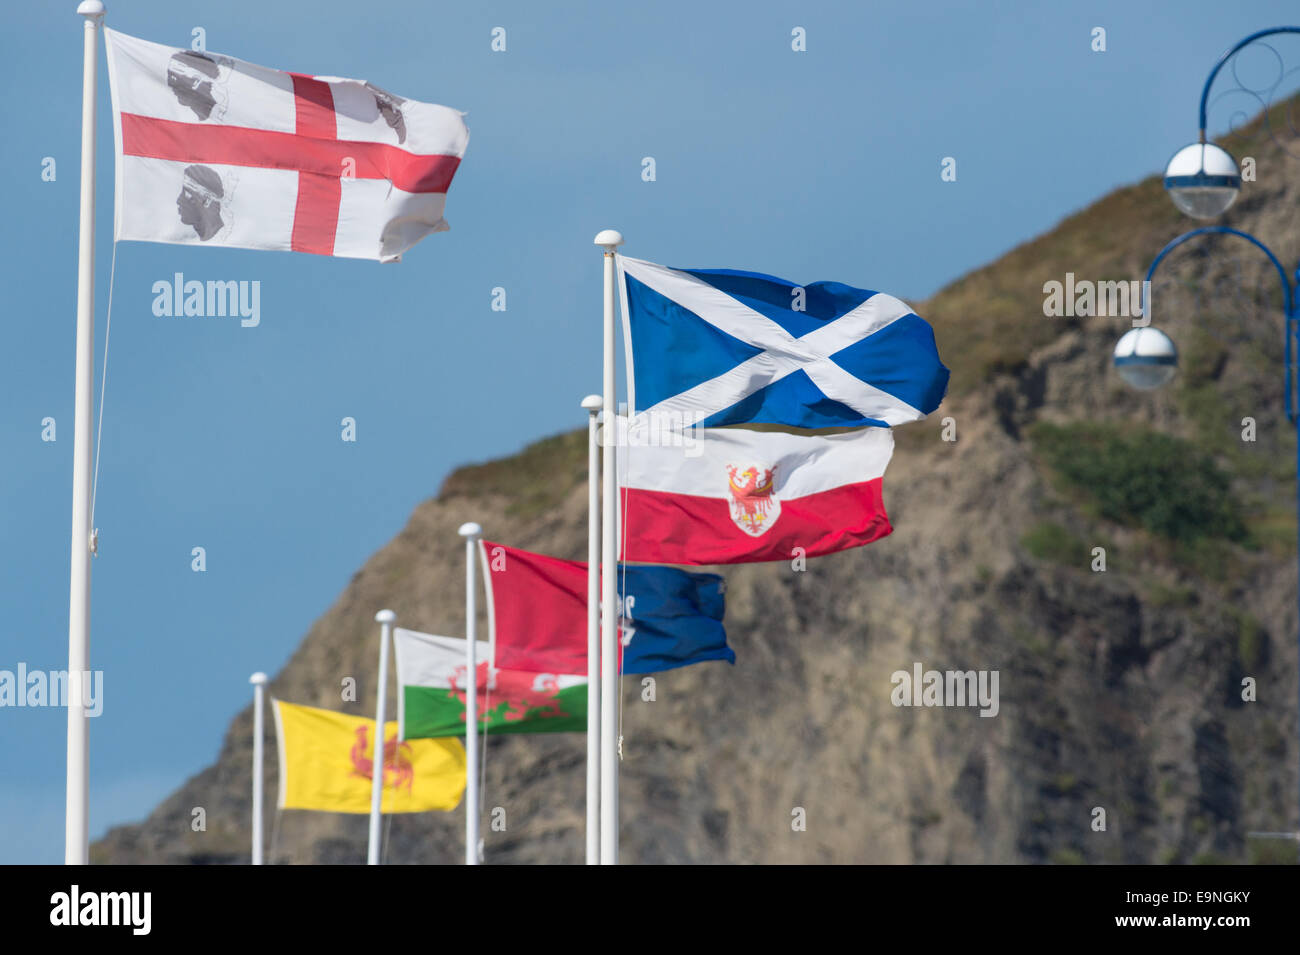 Flags of minority European countries and small nations flying on the promenade at Aberystwyth Wales UK, - Stock Image